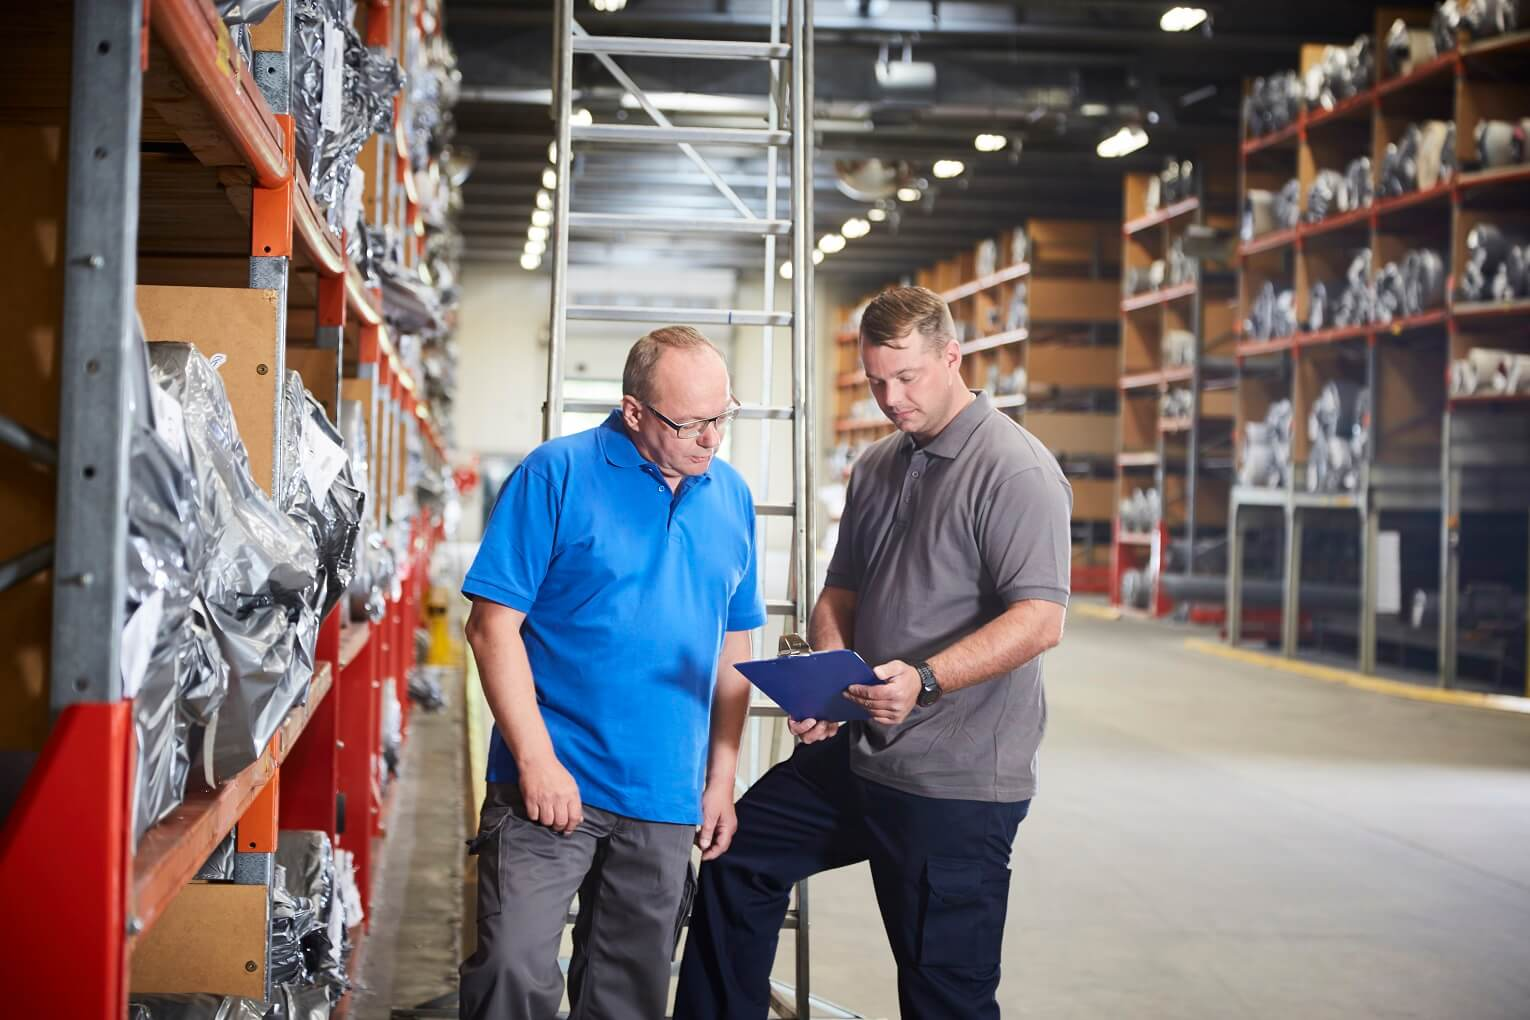 Warehouse workers - Polo Shirts - Men